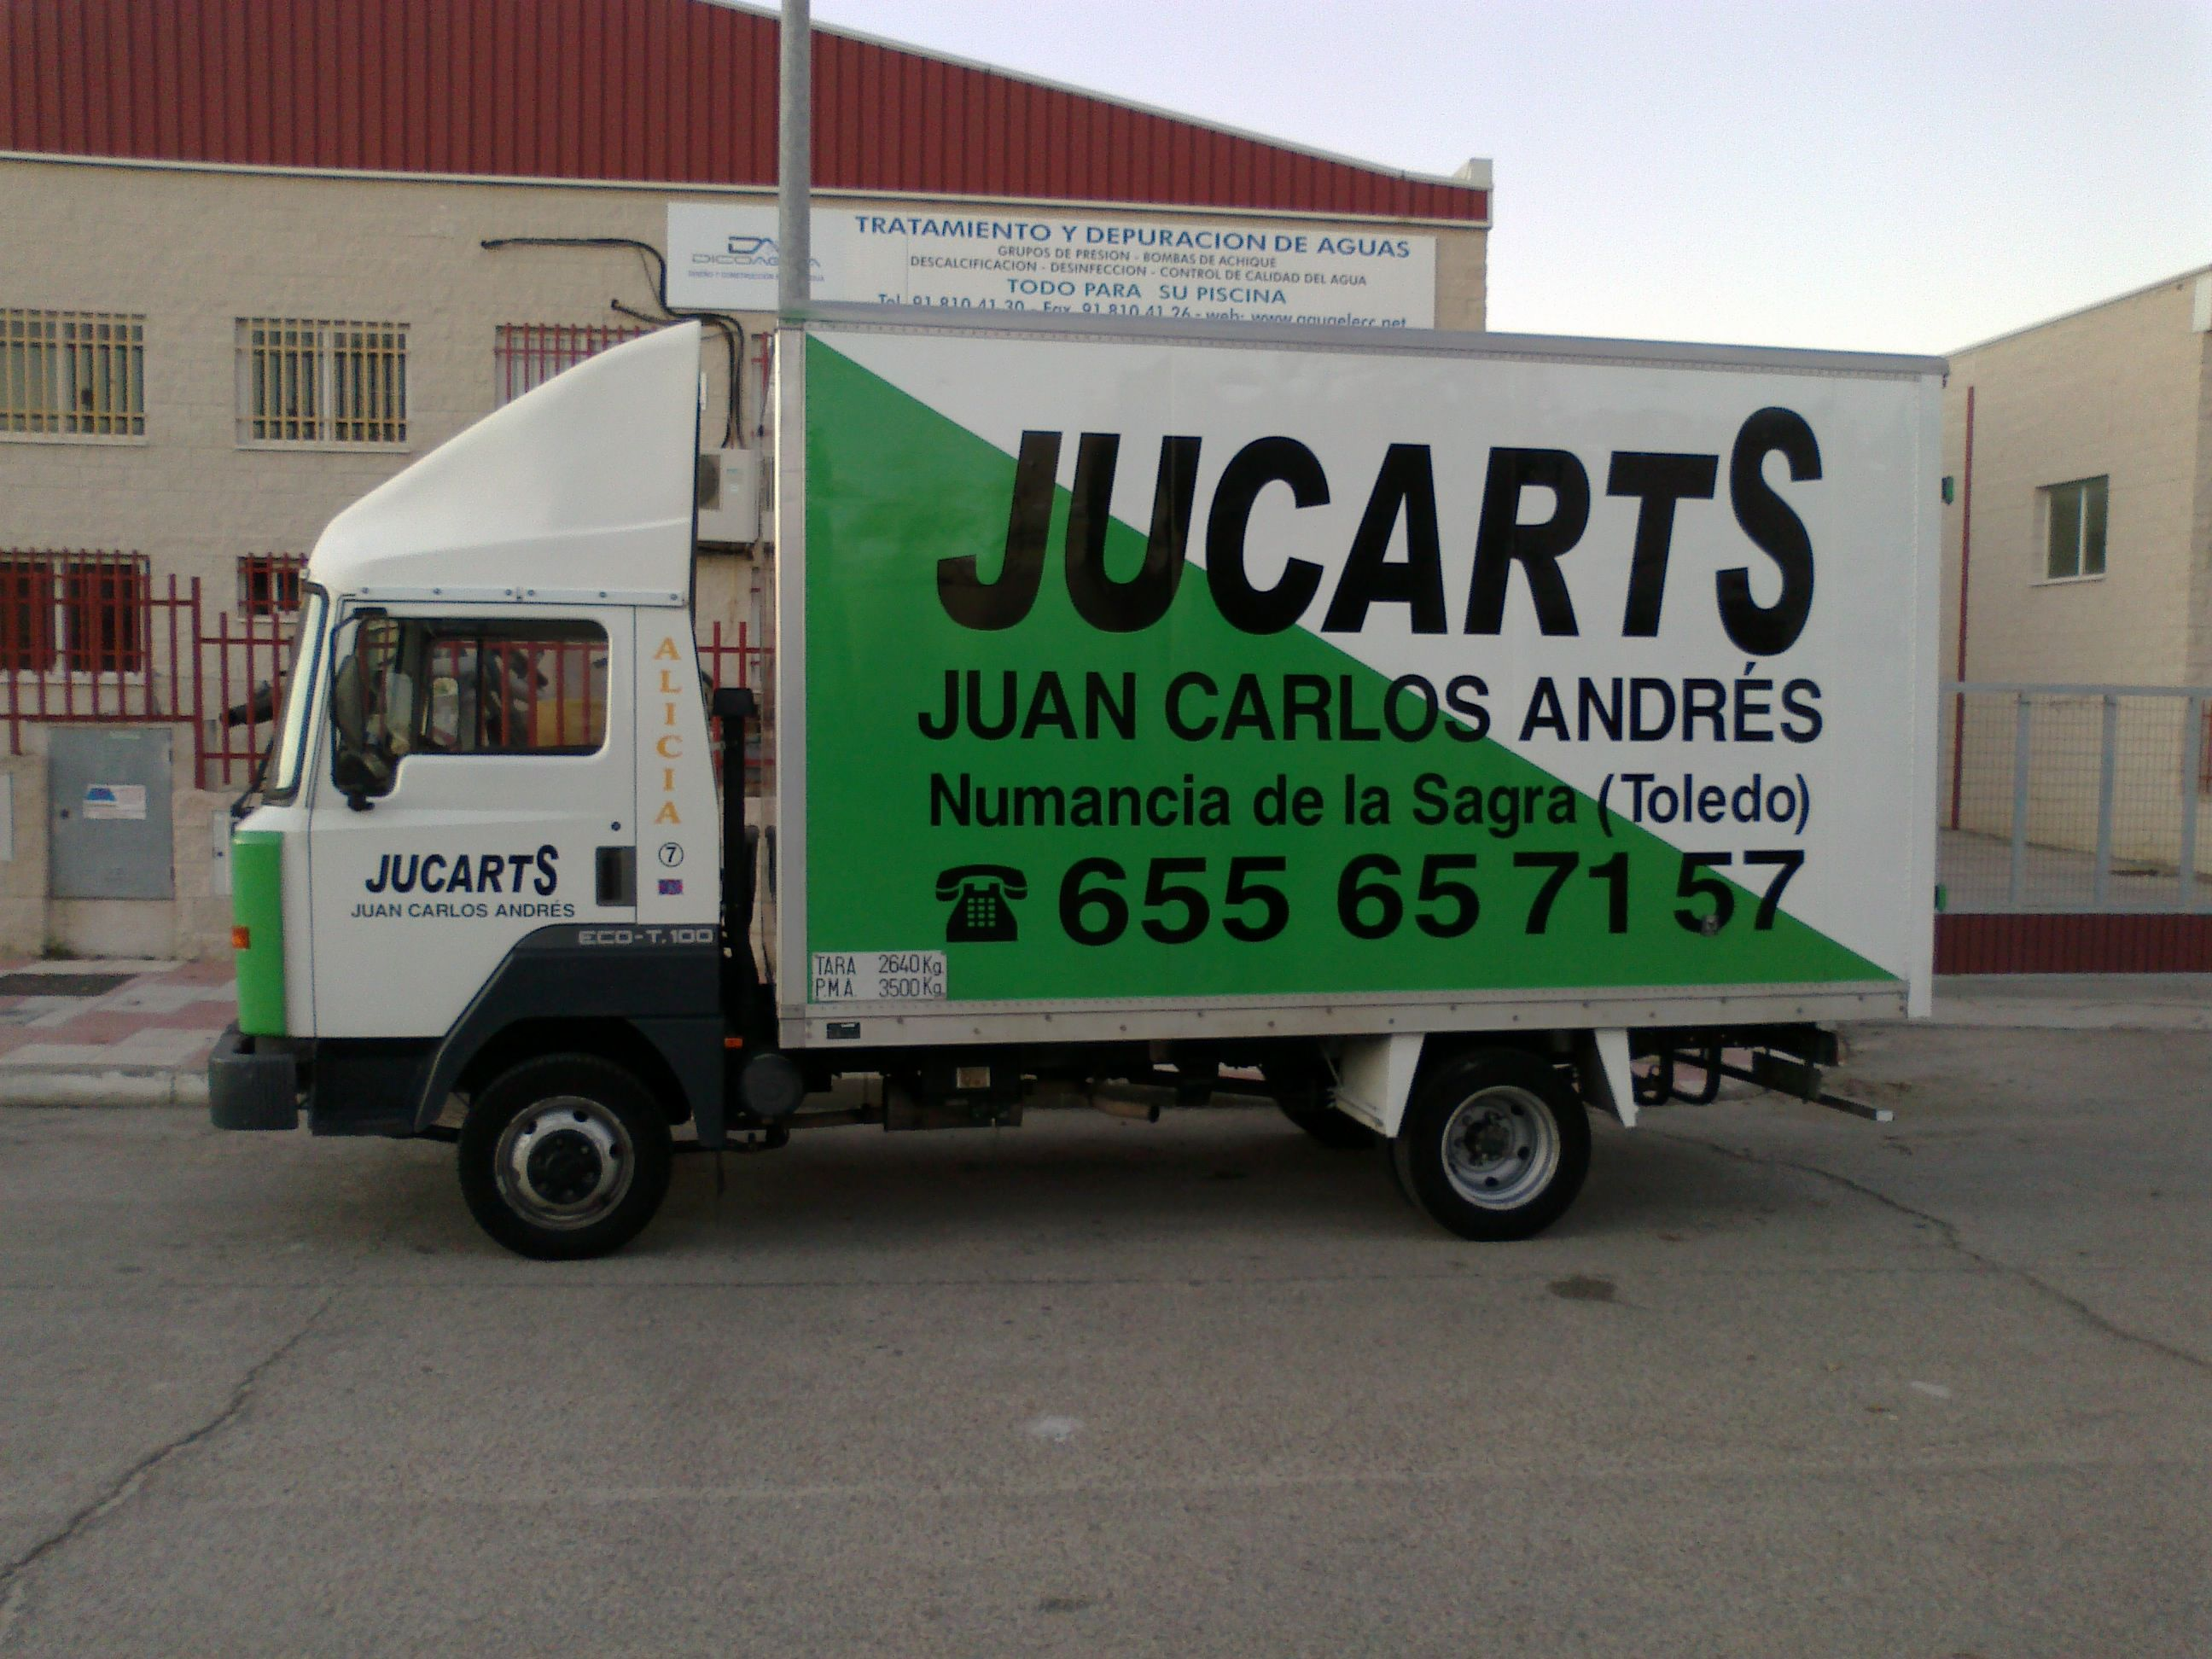 Picture 6 of Transporte por carretera in Yuncos | JUCARTS DISTRIBUCION Y LOGISTICA 2002 S.L